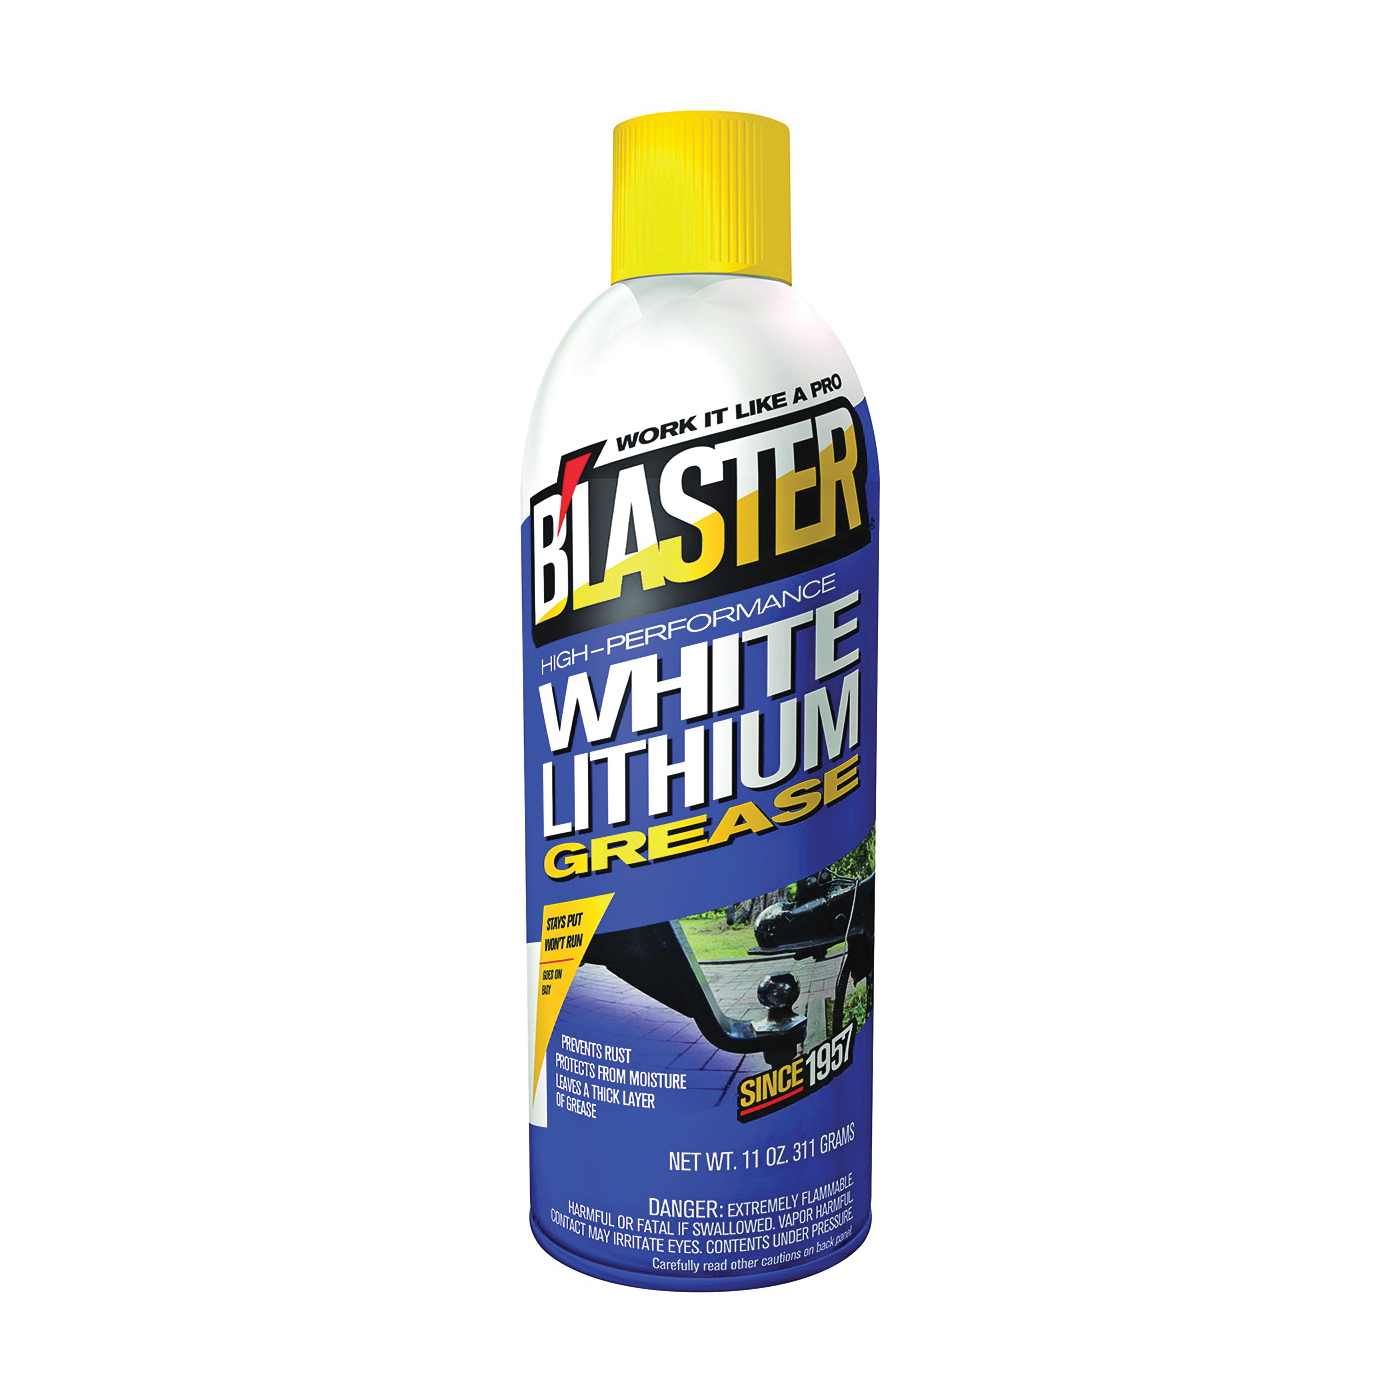 Picture of B'laster 16-LG Grease, 11 oz Package, Can, Fuel, White